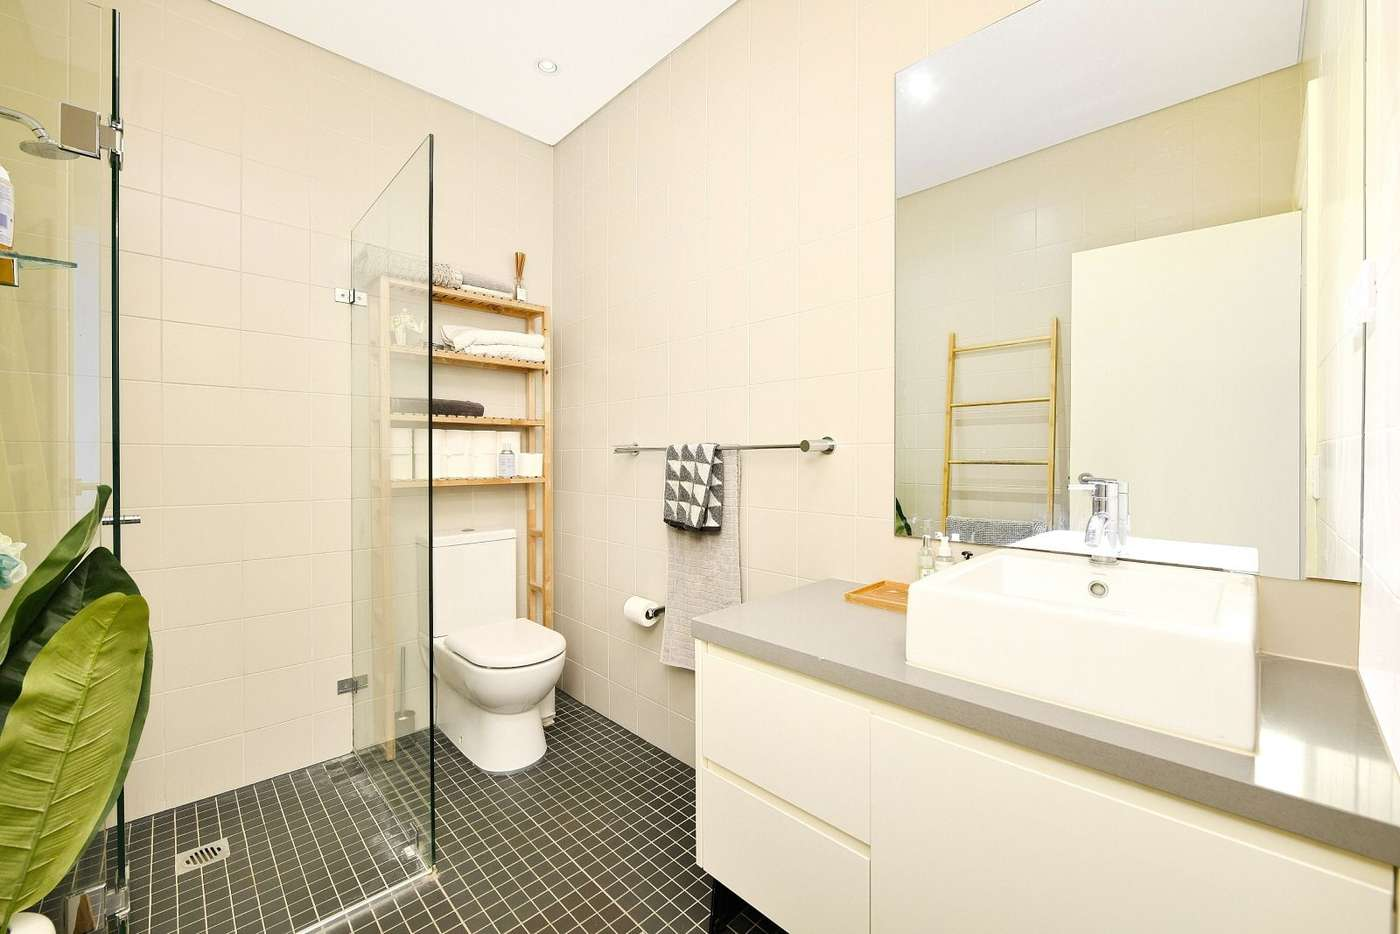 Sixth view of Homely apartment listing, 4/6-8 Norton Street, Leichhardt NSW 2040